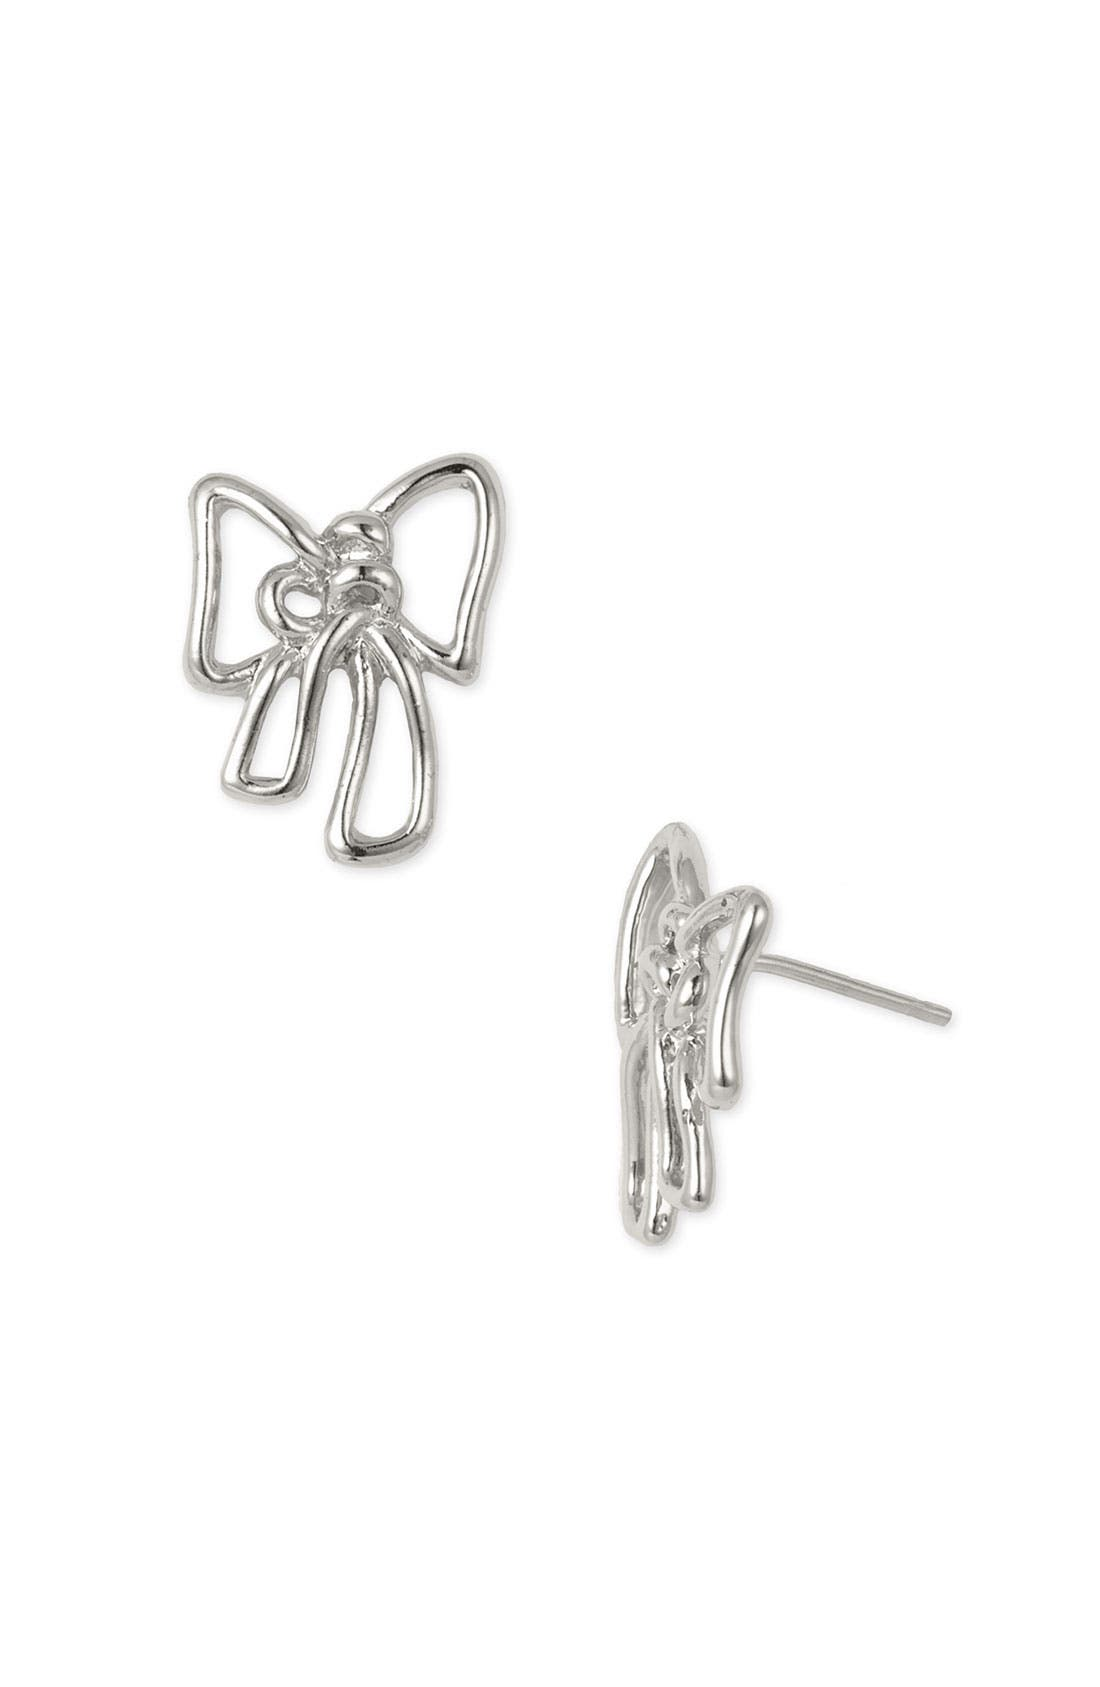 Main Image - MARC BY MARC JACOBS 'Classic Marc' Bow Stud Earrings